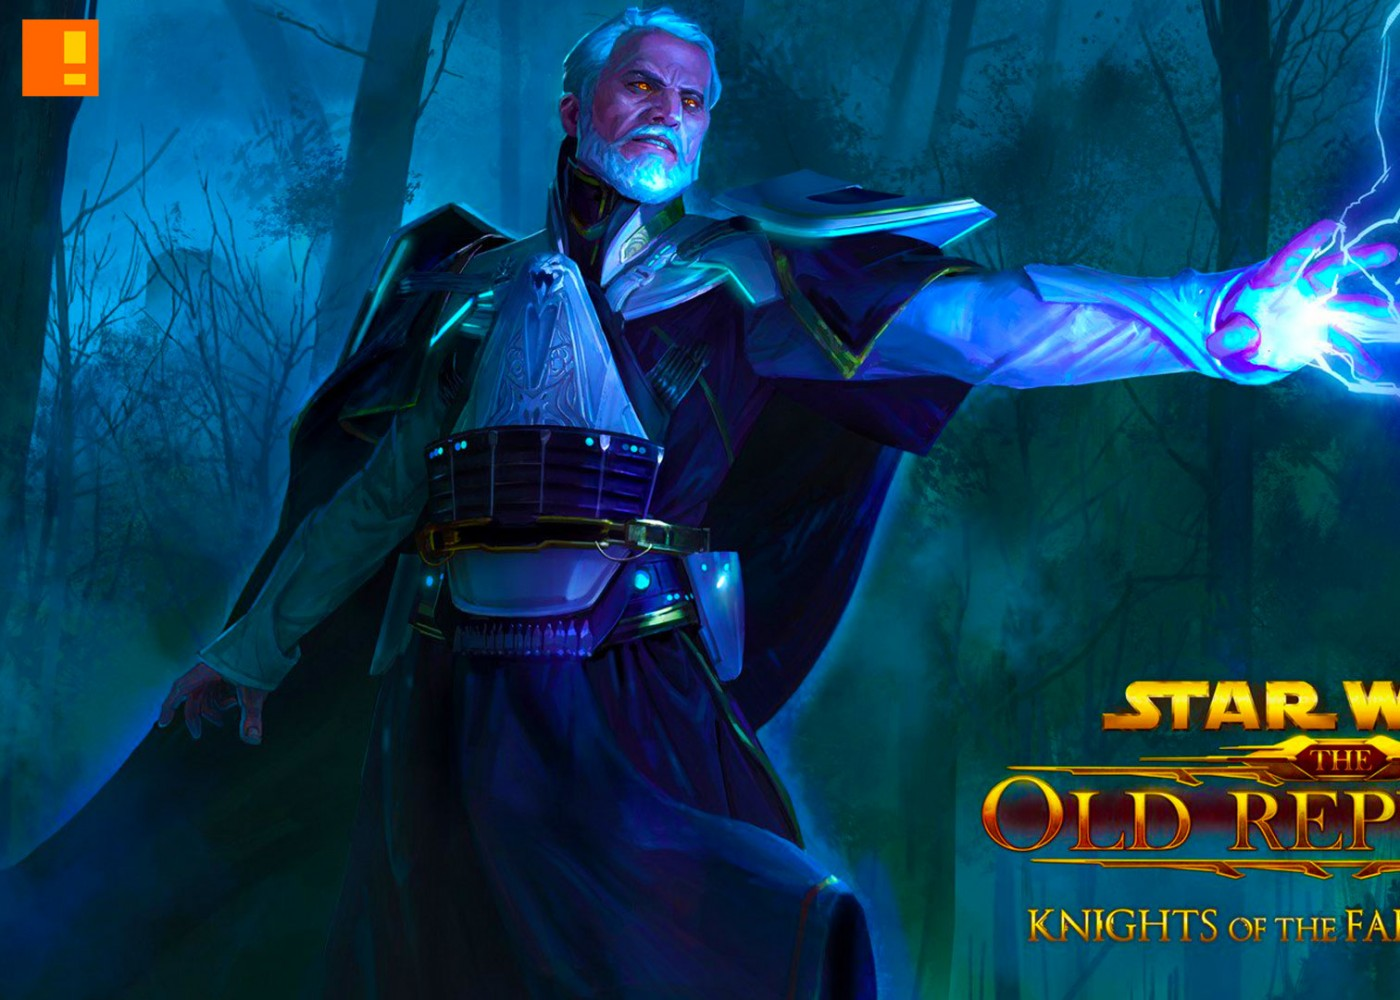 """Star Wars: The Old Republic - Knights of the Fallen Empire """"Visions in the Dark"""" Teaser . the action pixel. bioware. lucasfilm. the action pixel. @theactionpixel"""